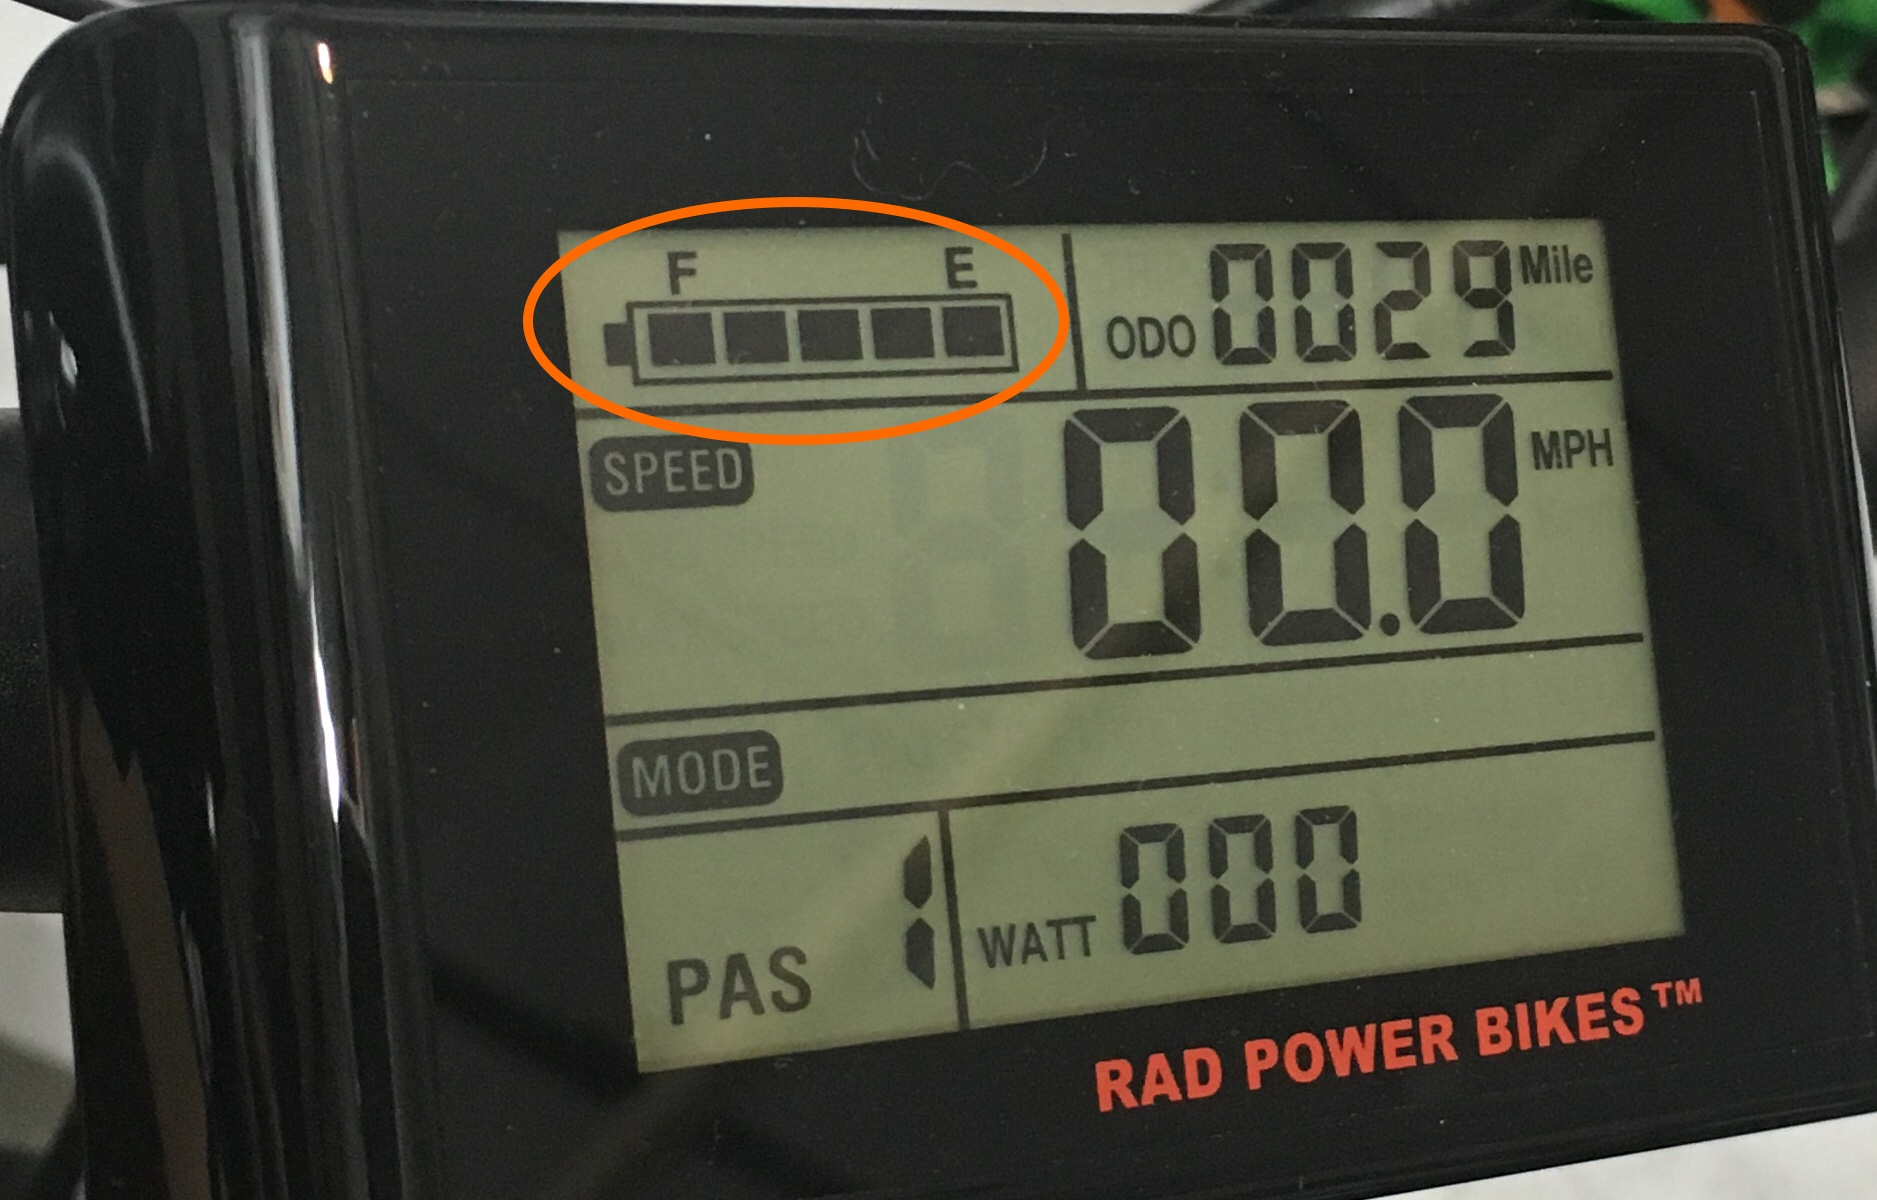 Battery_gauge_circled_LCD_display.jpg